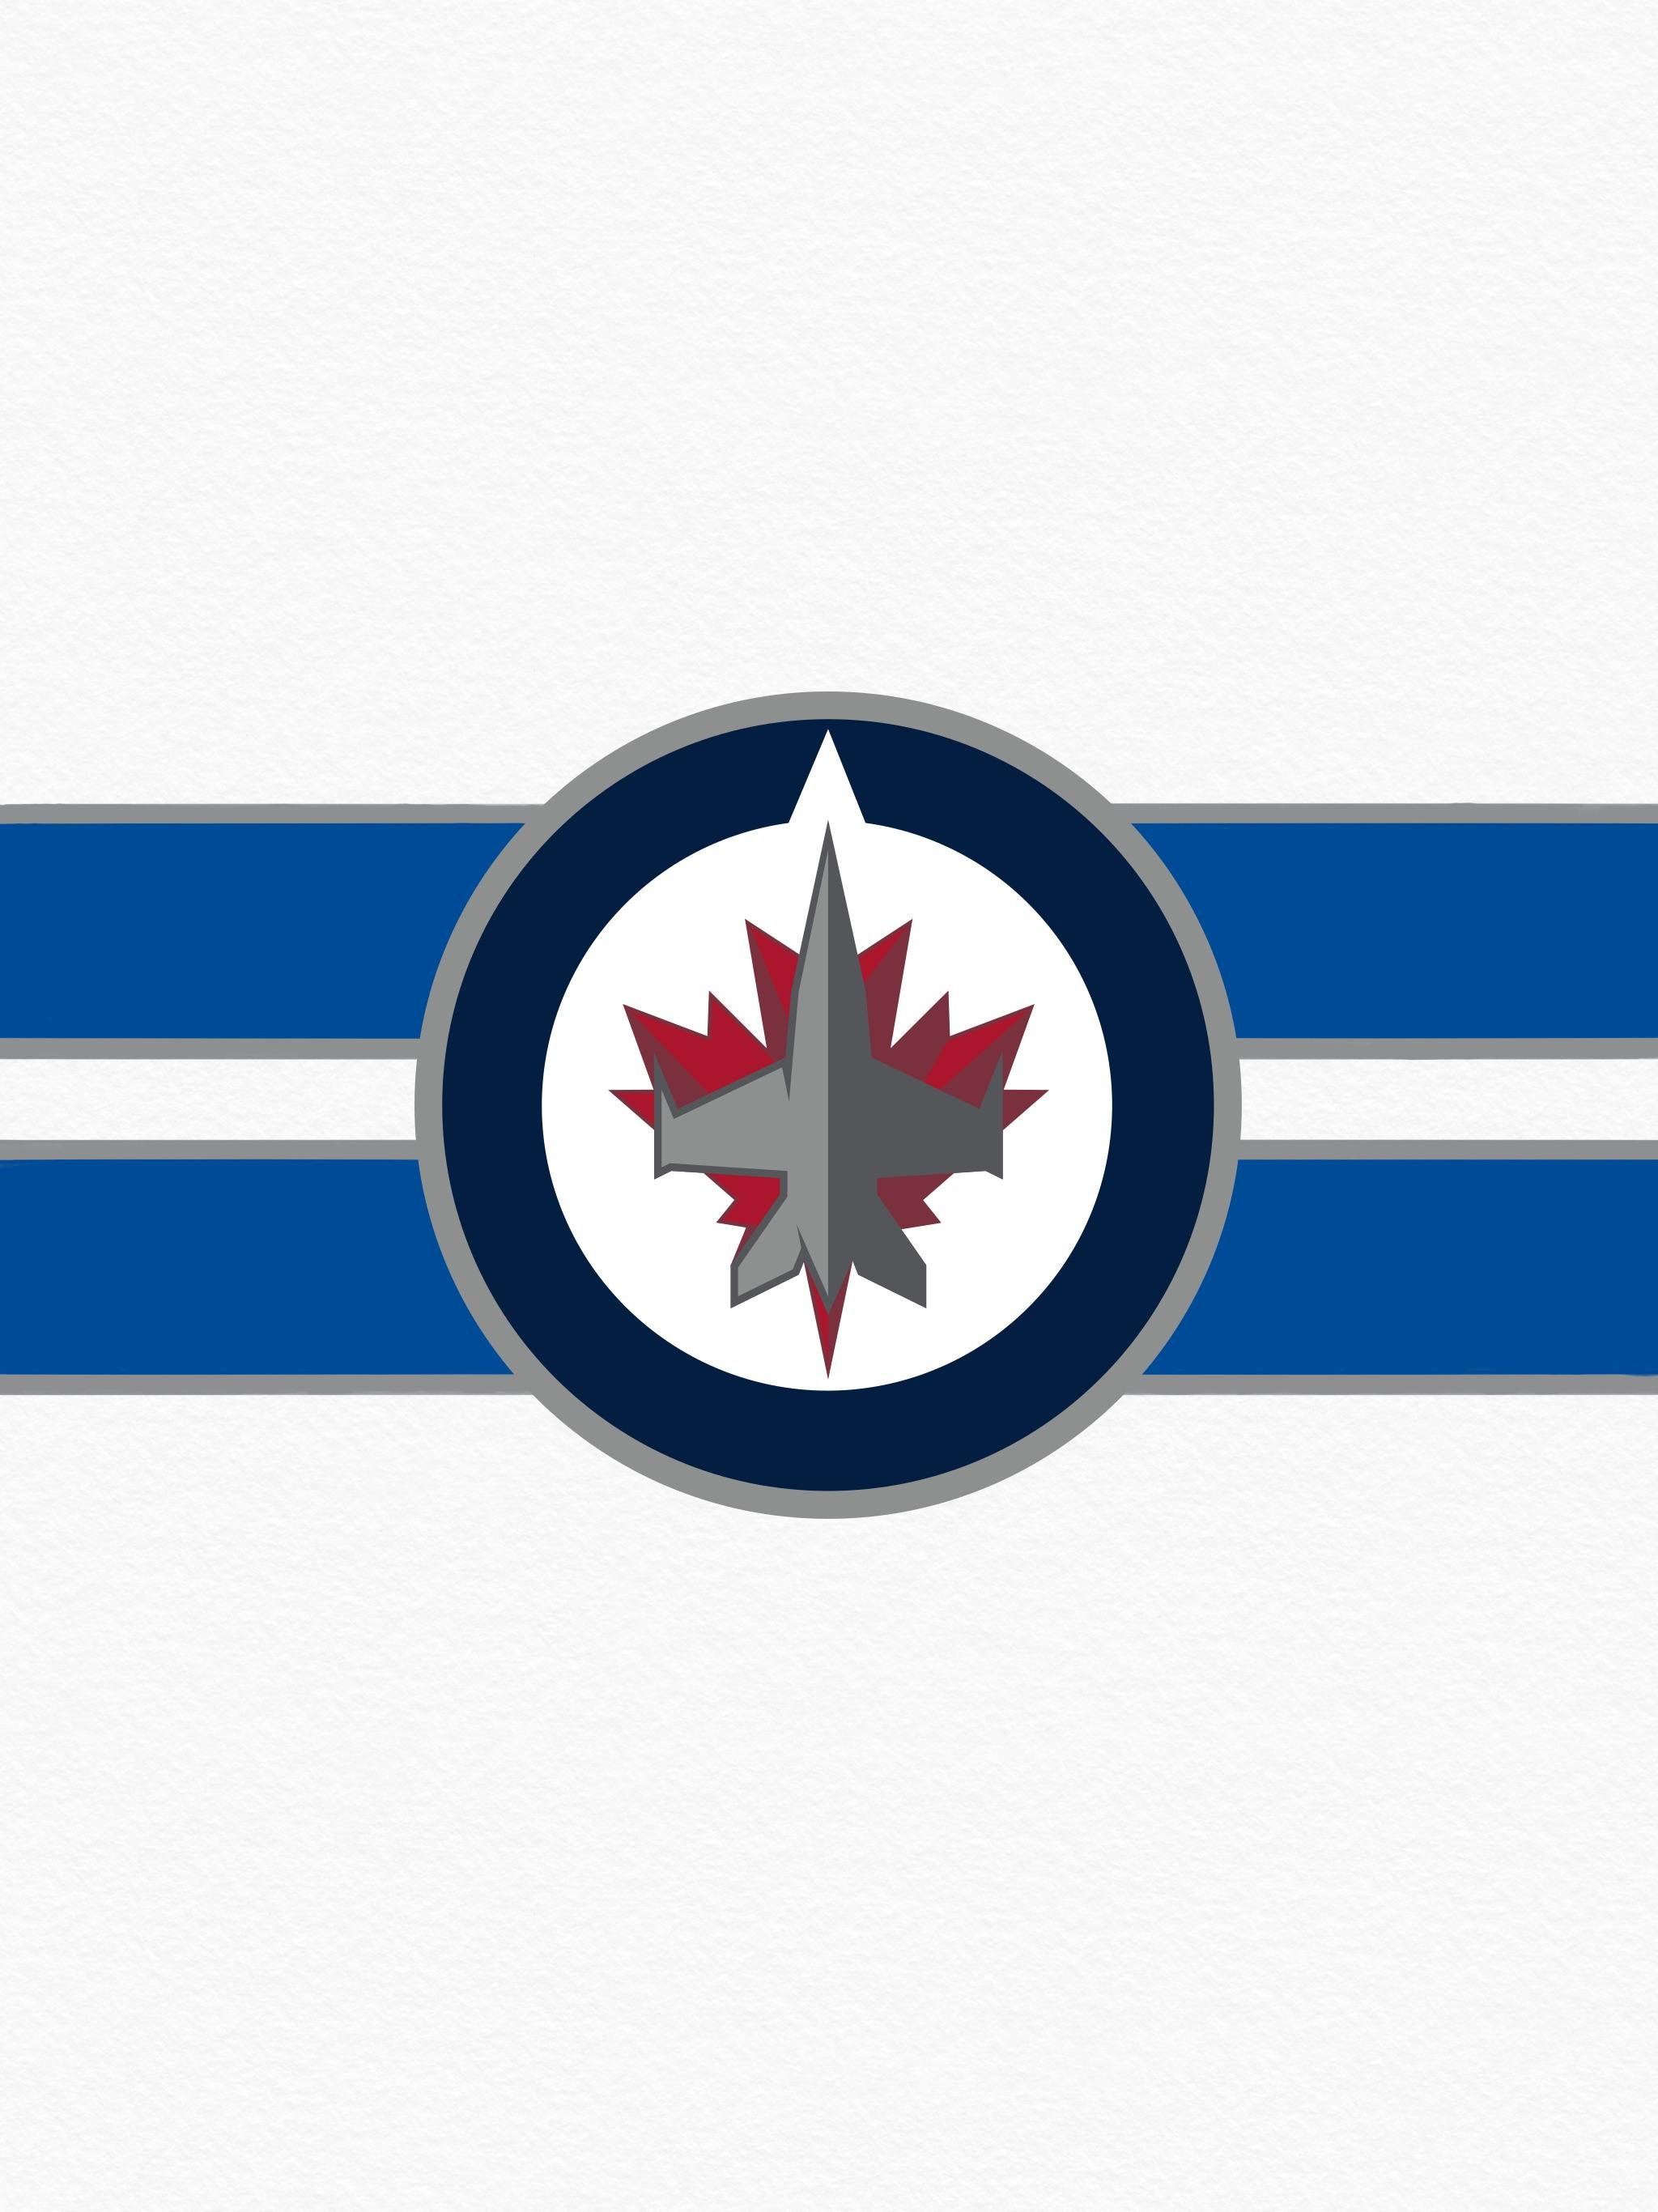 Made a whiteout wallpaper figured Id share it GO JETS GO 2048x2732